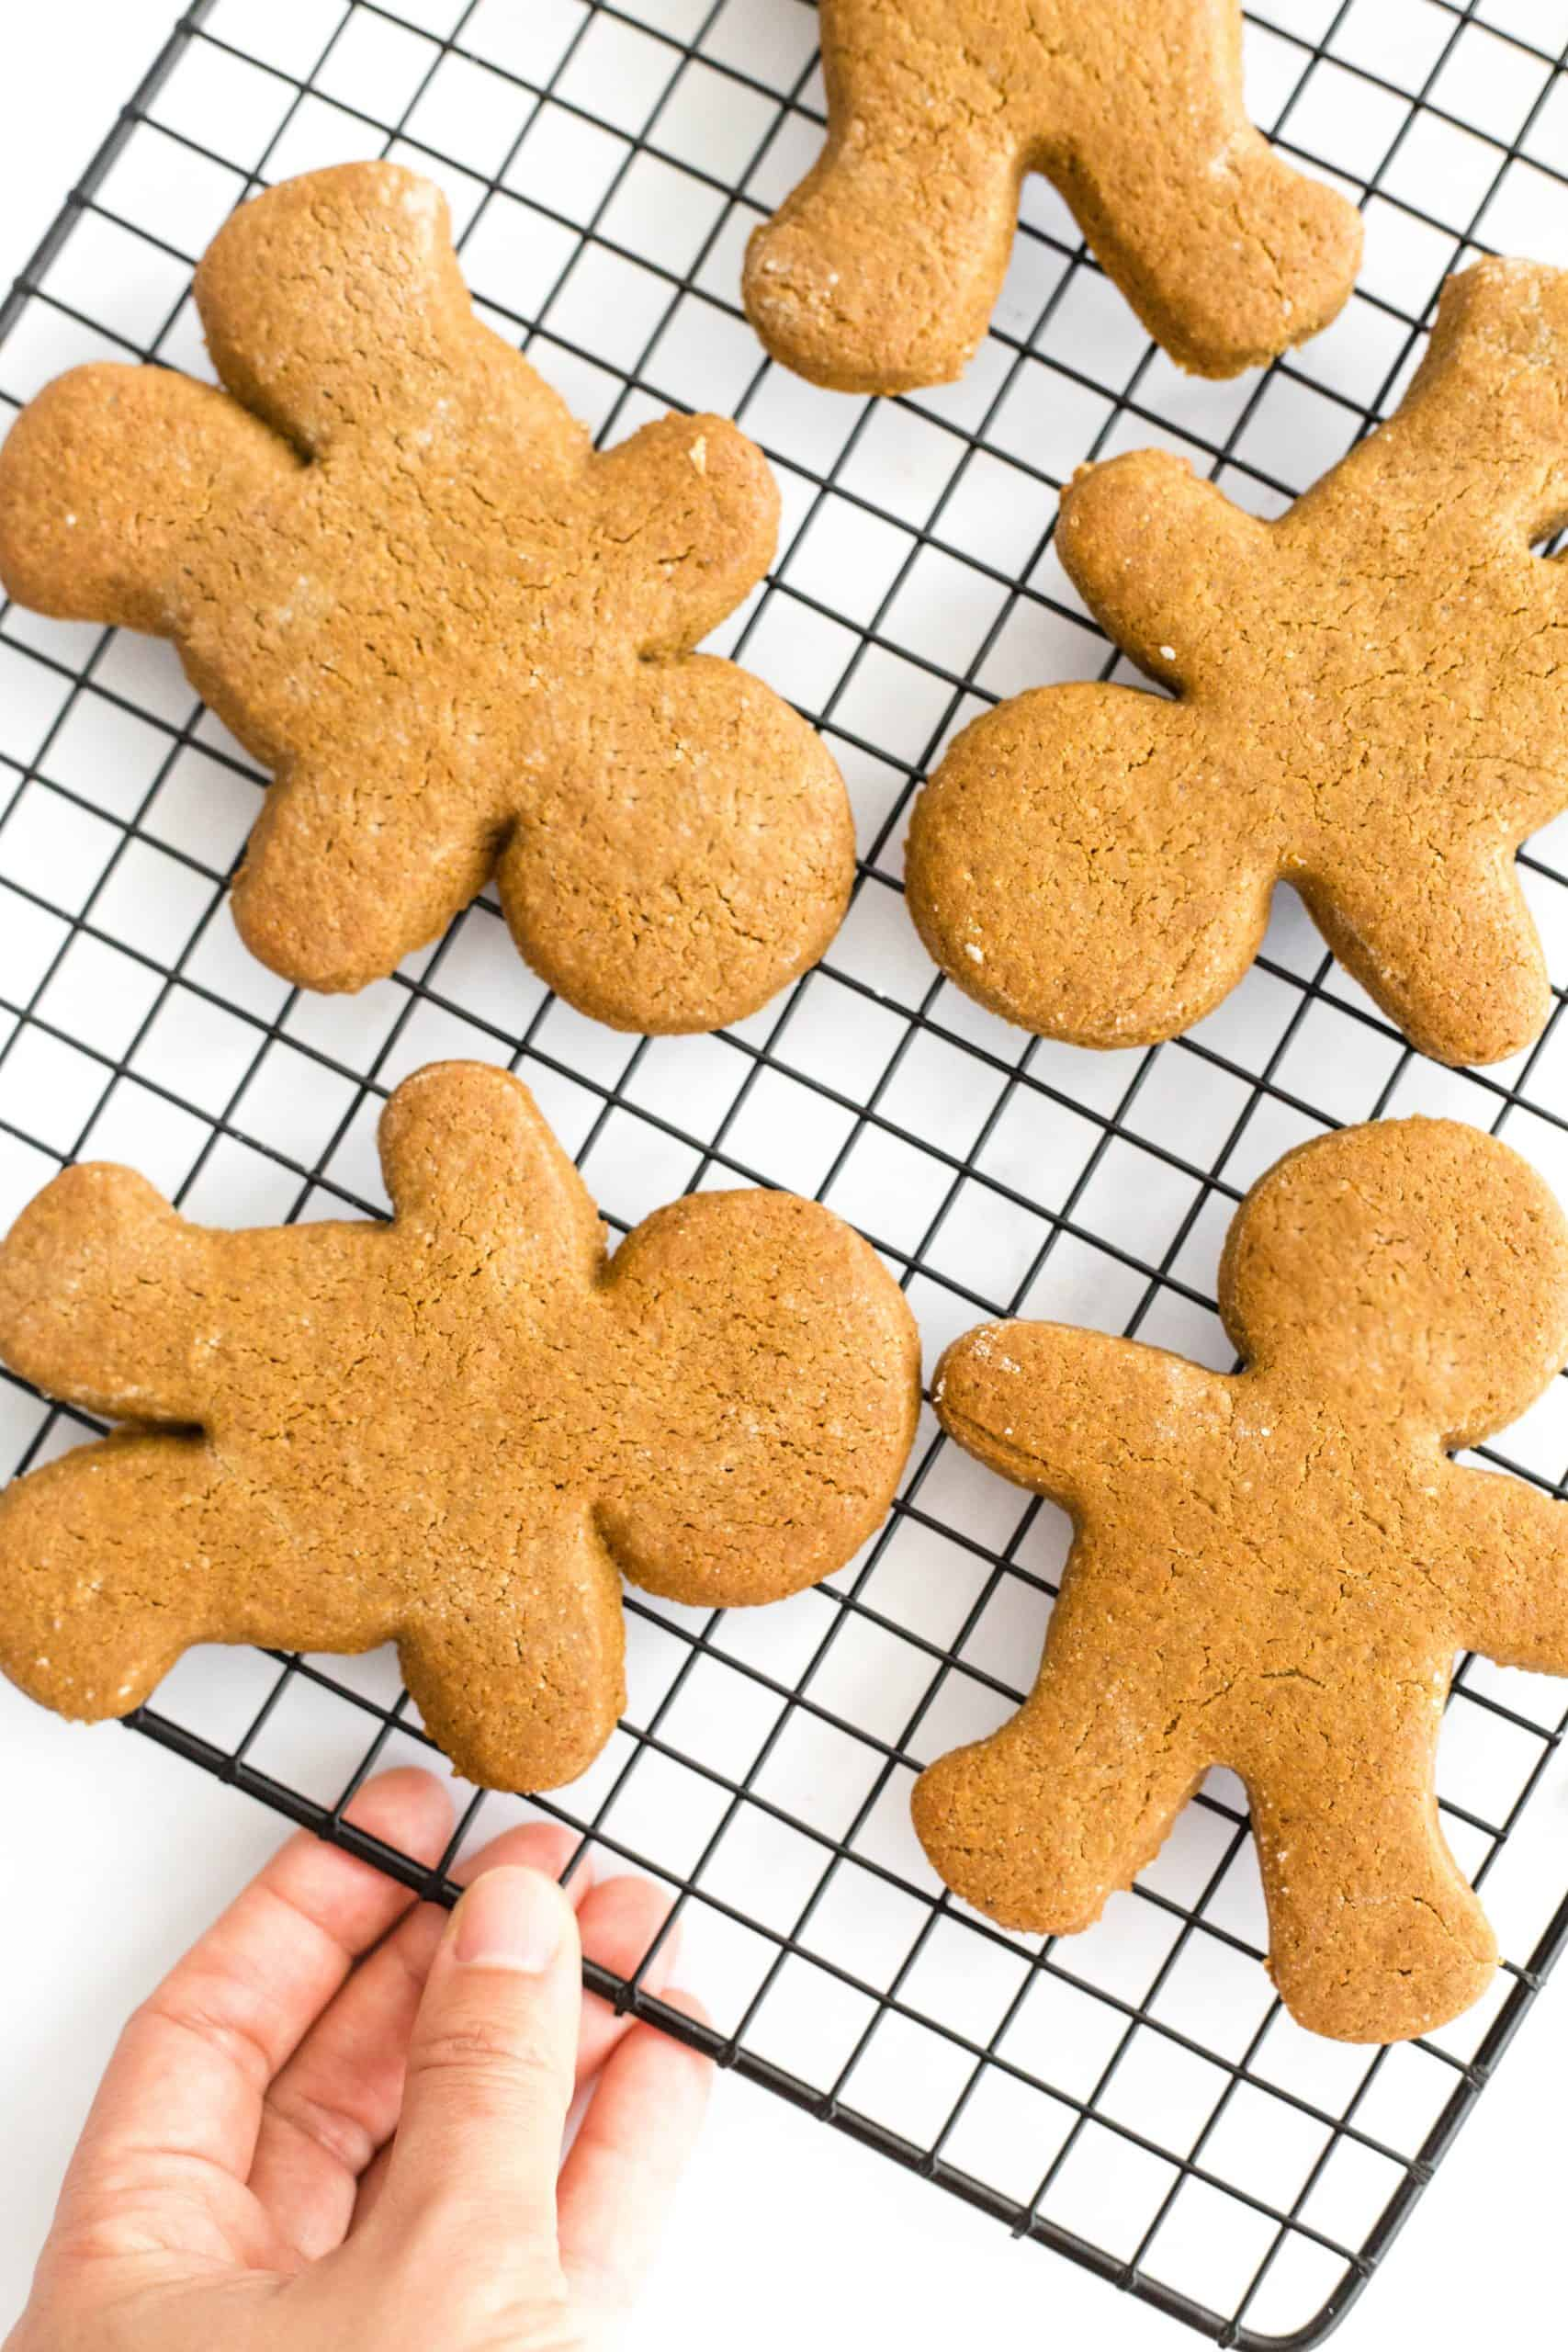 Gingerbread men cooling on a wire rack.